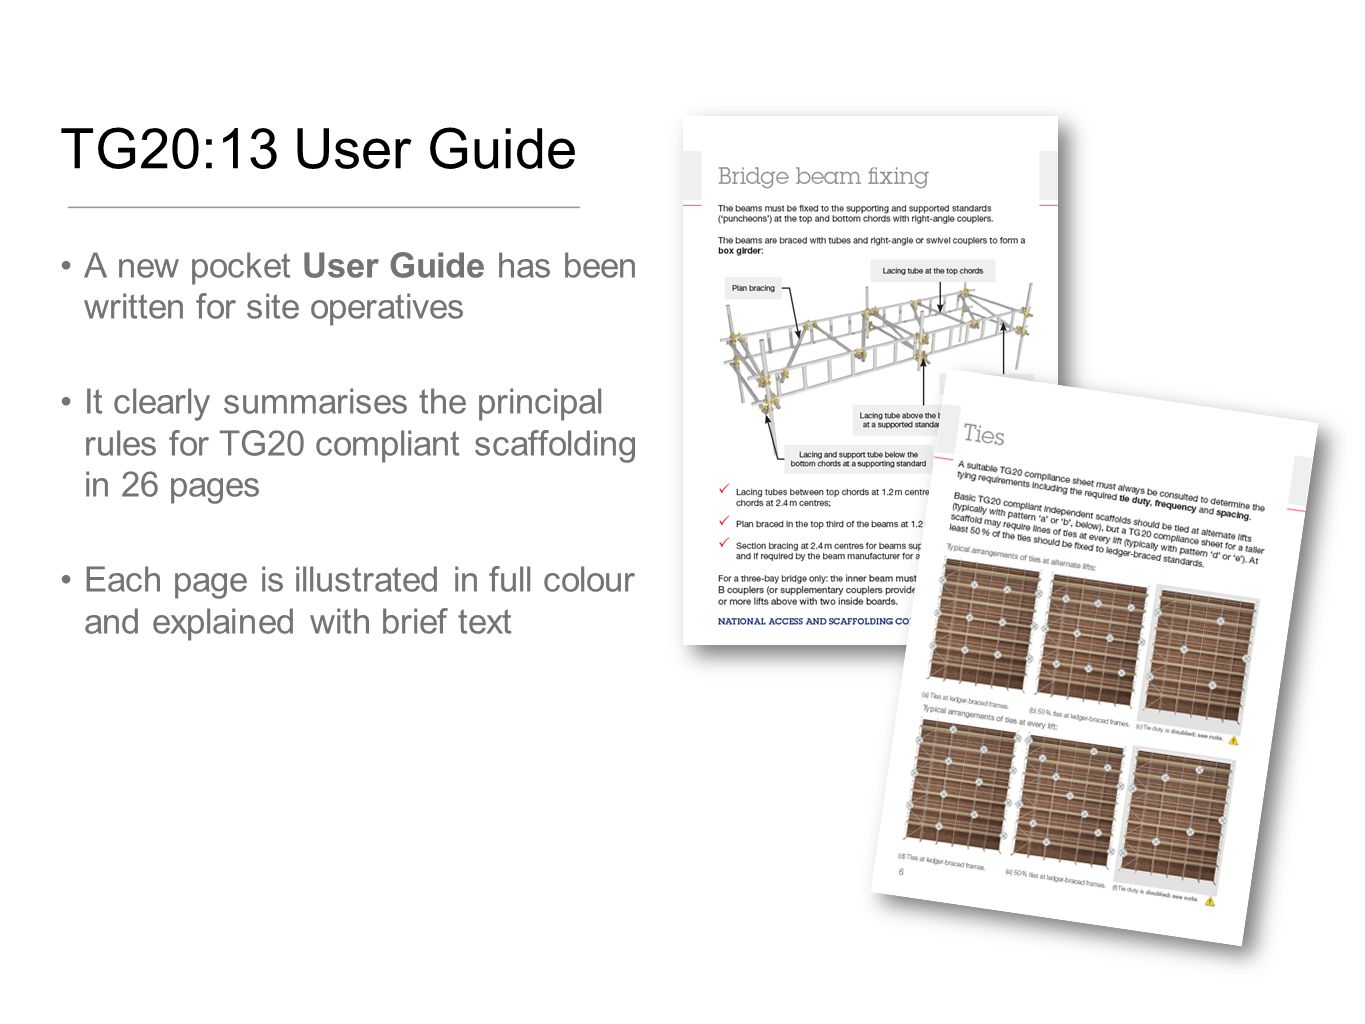 TG20:13 User Guide A new pocket User Guide has been written for site operatives.